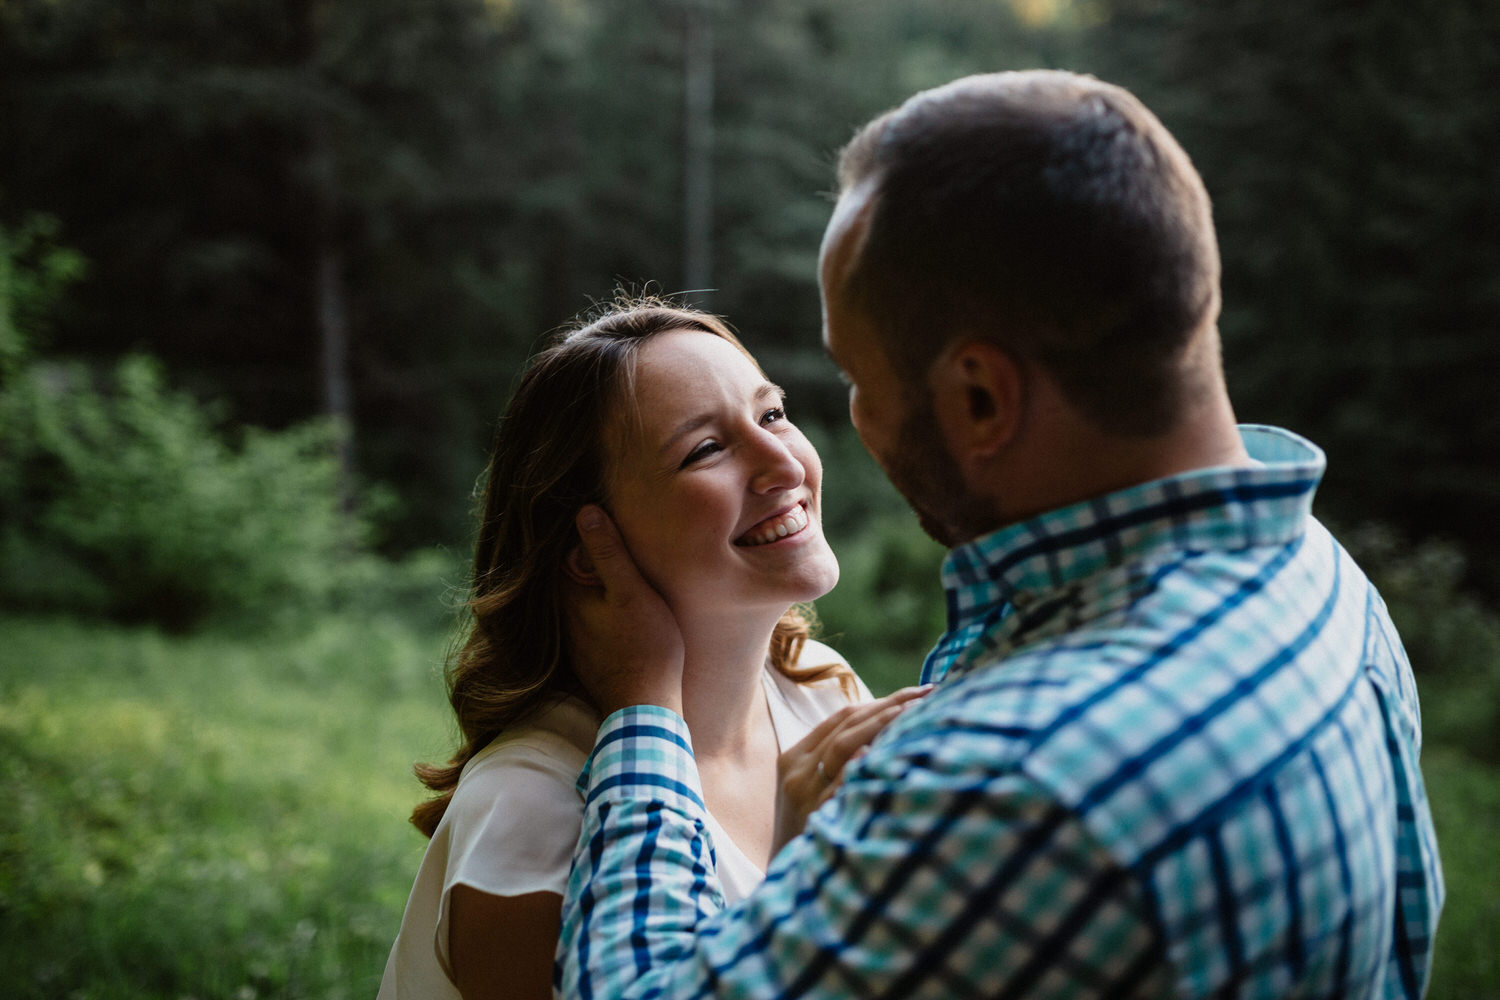 Hoyt Arboretum Engagement session photography Portland oregon 0009.JPG